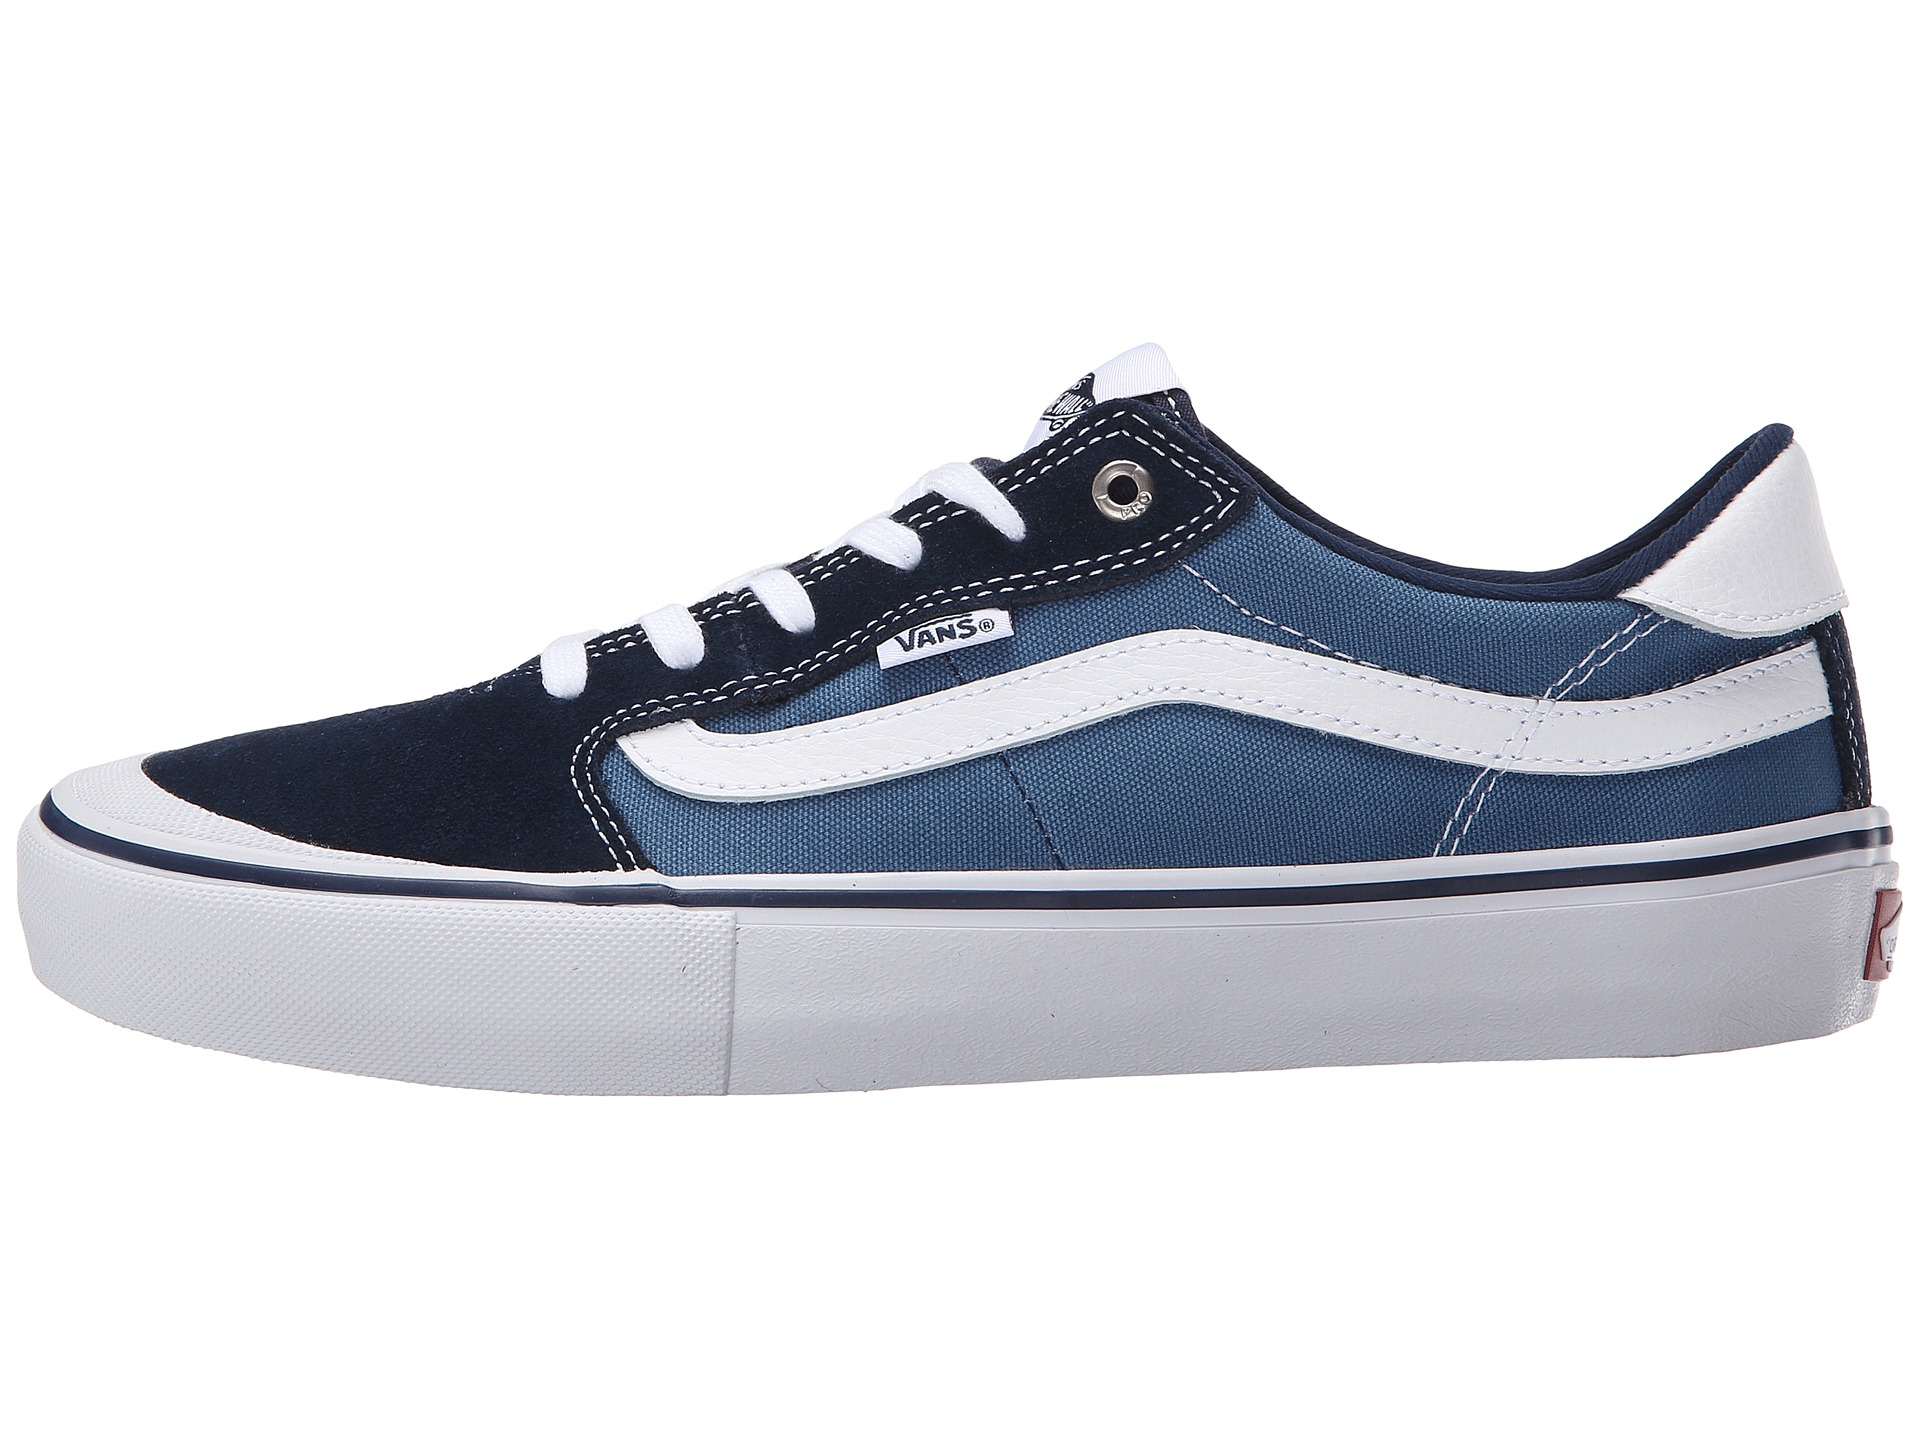 Vans Suede Style 112 Pro in Blue for